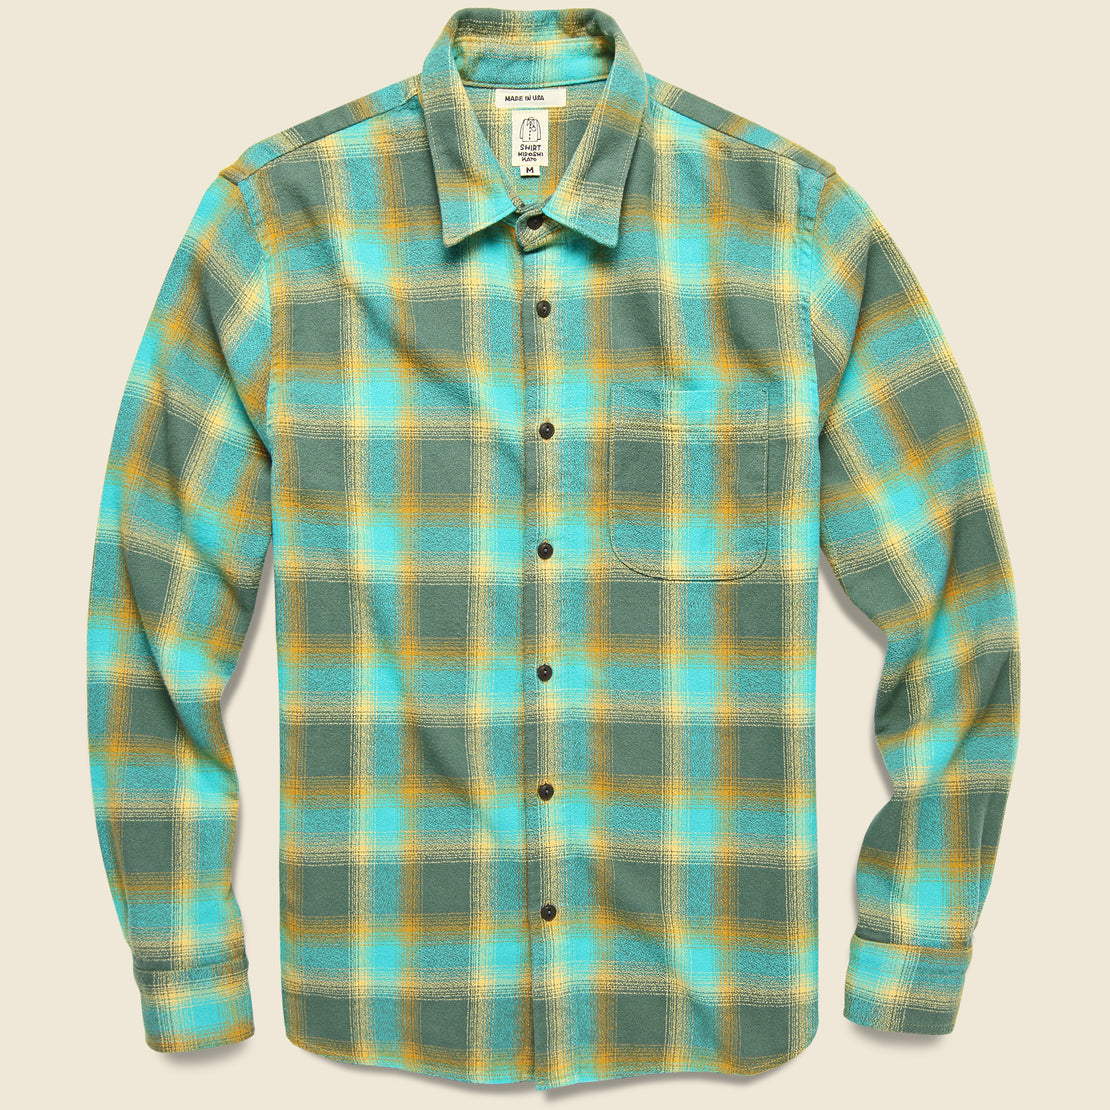 KATO Ripper Flannel - Green Vintage Plaid